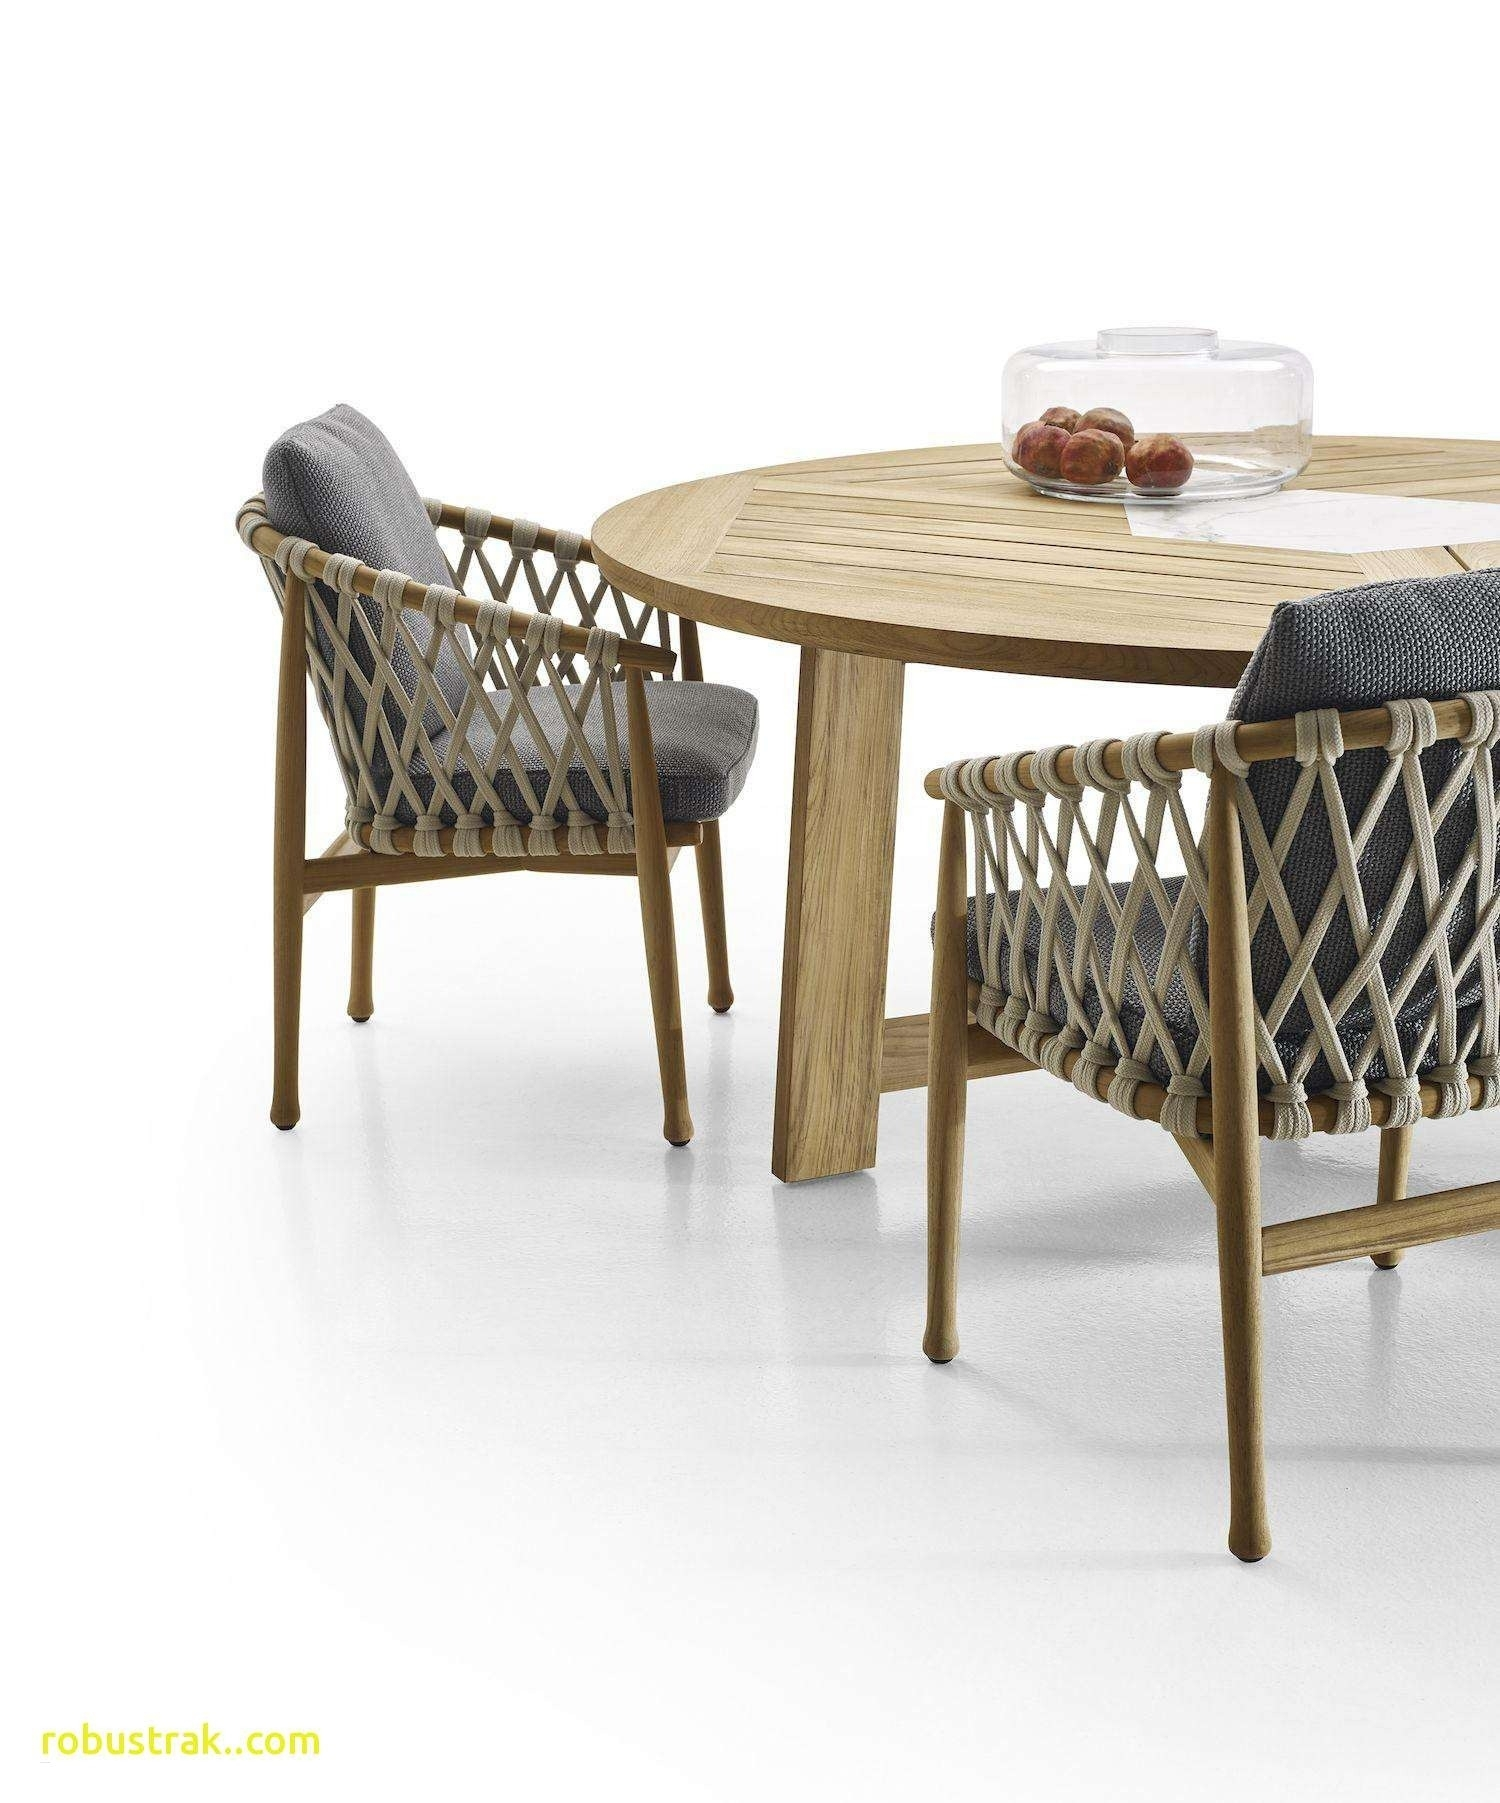 The 21 New Pedestals For Dining Tables – Welovedandelion Intended For Current Caira Extension Pedestal Dining Tables (View 6 of 20)